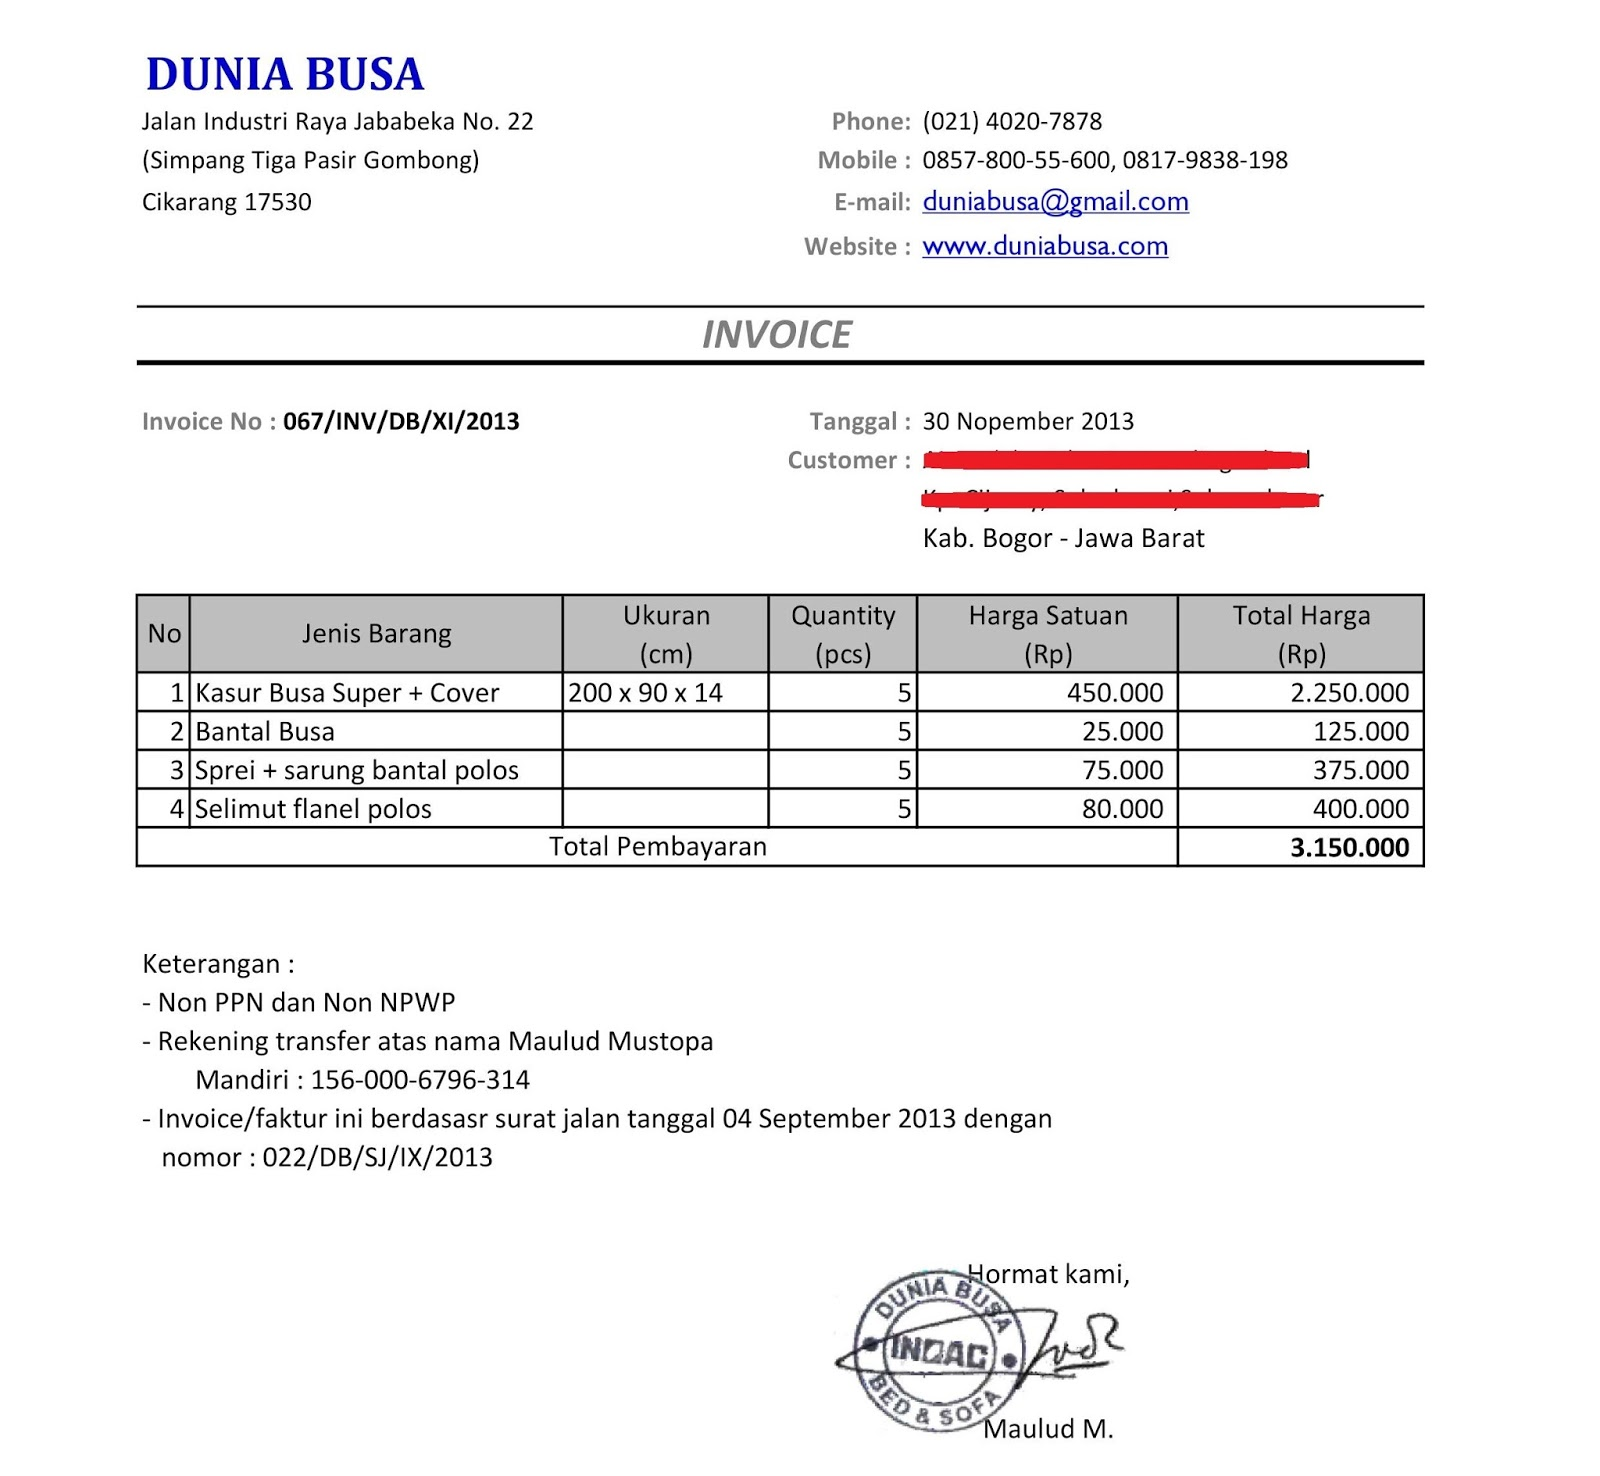 Usdgus  Winning Free Invoice Online  Create Invoice Online  Invoice Template  With Extraordinary Contoh Format Invoice Atau Surat Tagihan  Brankas Arsip  Free Invoice Online With Endearing Where Can I Buy Rent Receipts Also Receipt Scanners Reviews In Addition Kindly Confirm Receipt Of This Email And Making A Fake Receipt As Well As Certified Letter Return Receipt Additionally Auto Shop Receipt From Sklepco With Usdgus  Extraordinary Free Invoice Online  Create Invoice Online  Invoice Template  With Endearing Contoh Format Invoice Atau Surat Tagihan  Brankas Arsip  Free Invoice Online And Winning Where Can I Buy Rent Receipts Also Receipt Scanners Reviews In Addition Kindly Confirm Receipt Of This Email From Sklepco